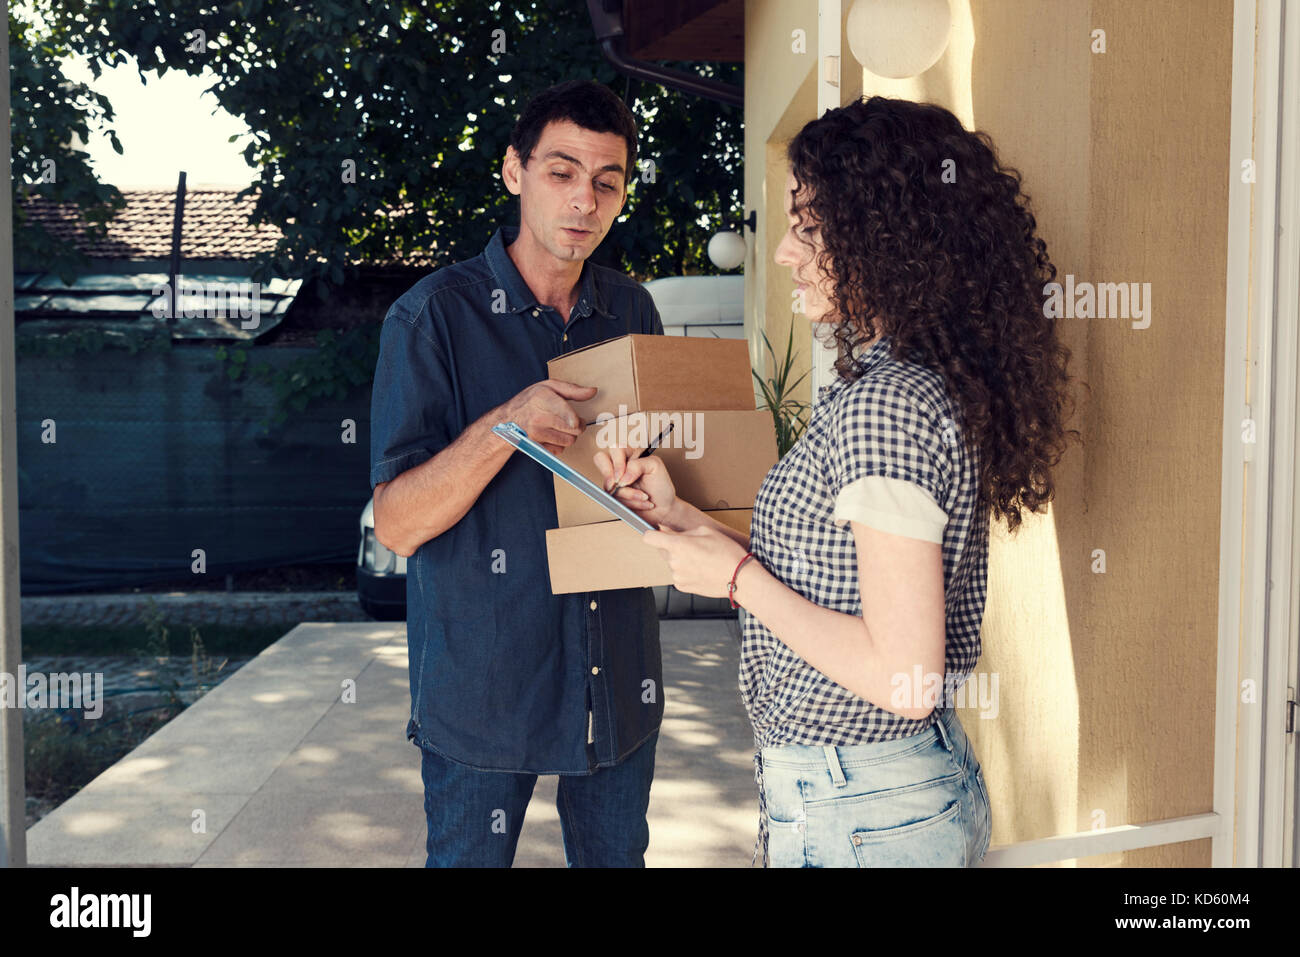 Cash Delivery Stock Photos Amp Cash Delivery Stock Images